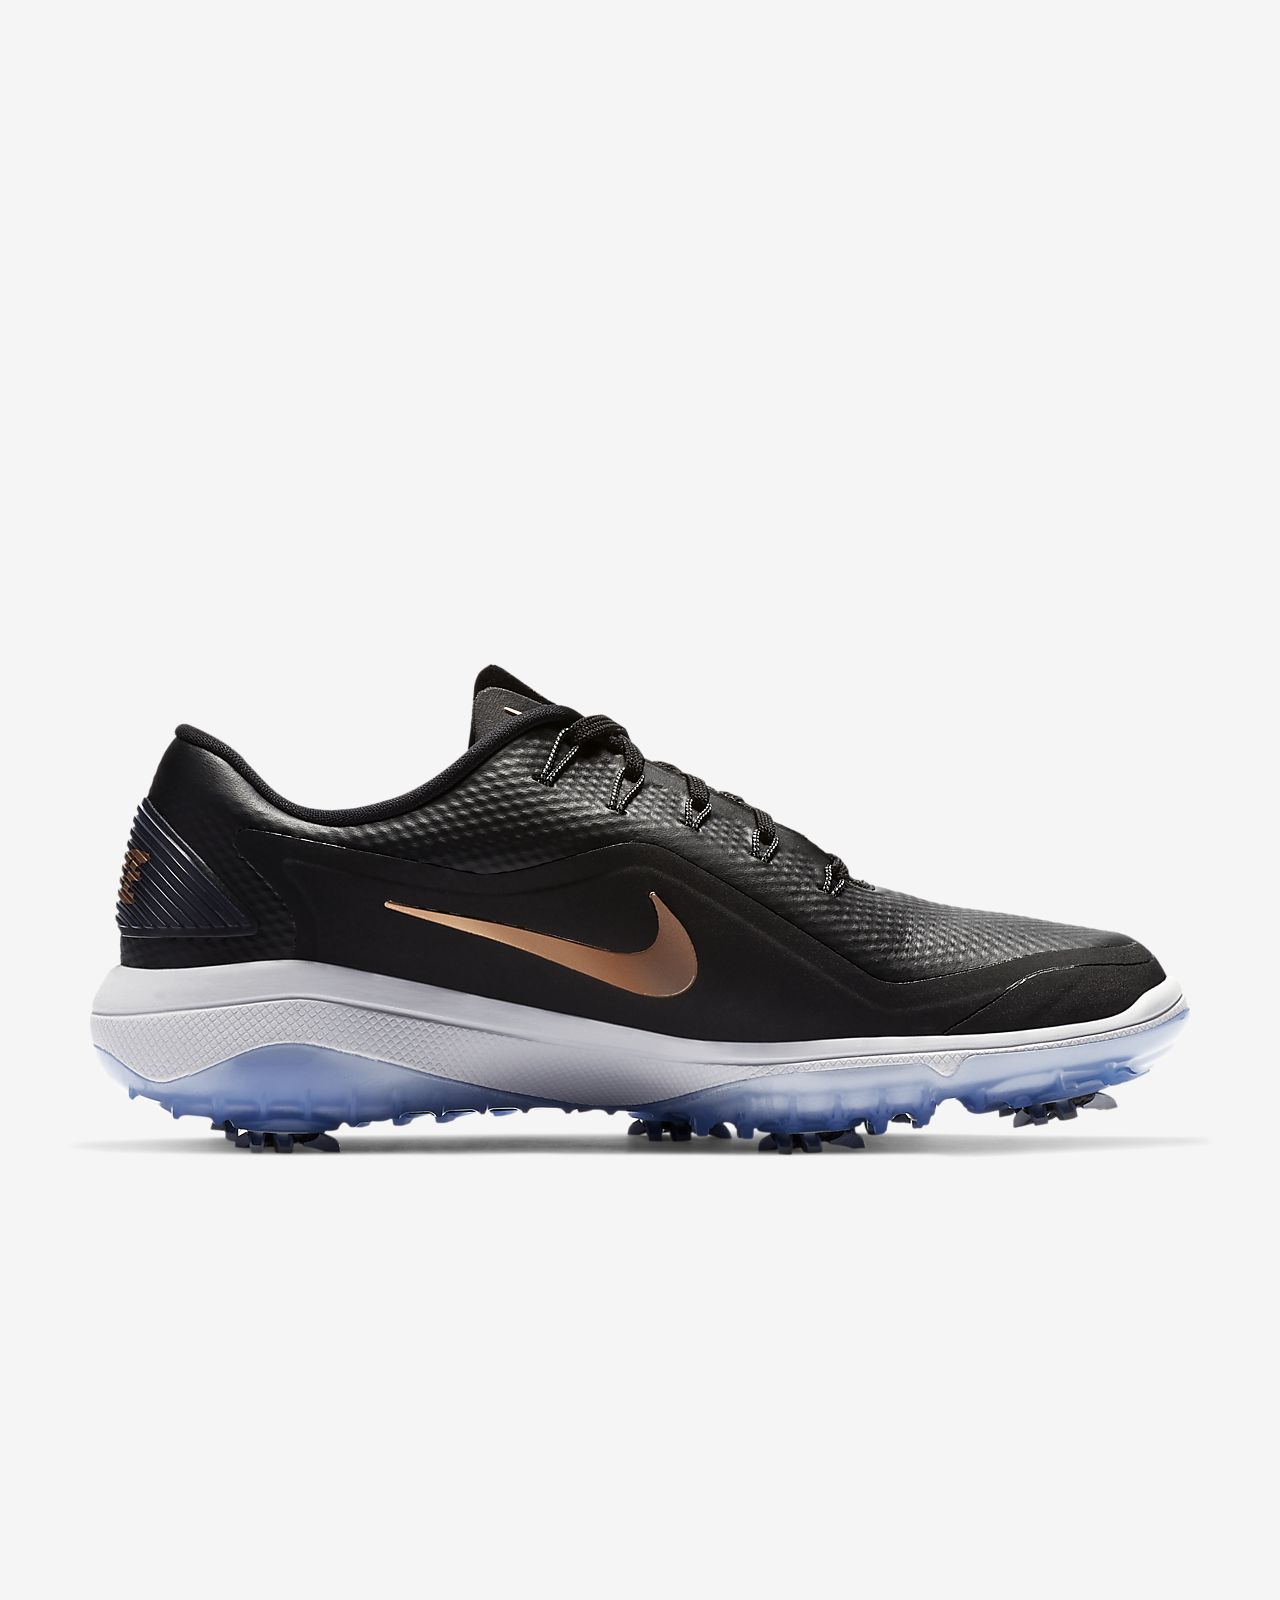 5a25a15b09f9 Nike React Vapor 2 Women s Golf Shoe. Nike.com